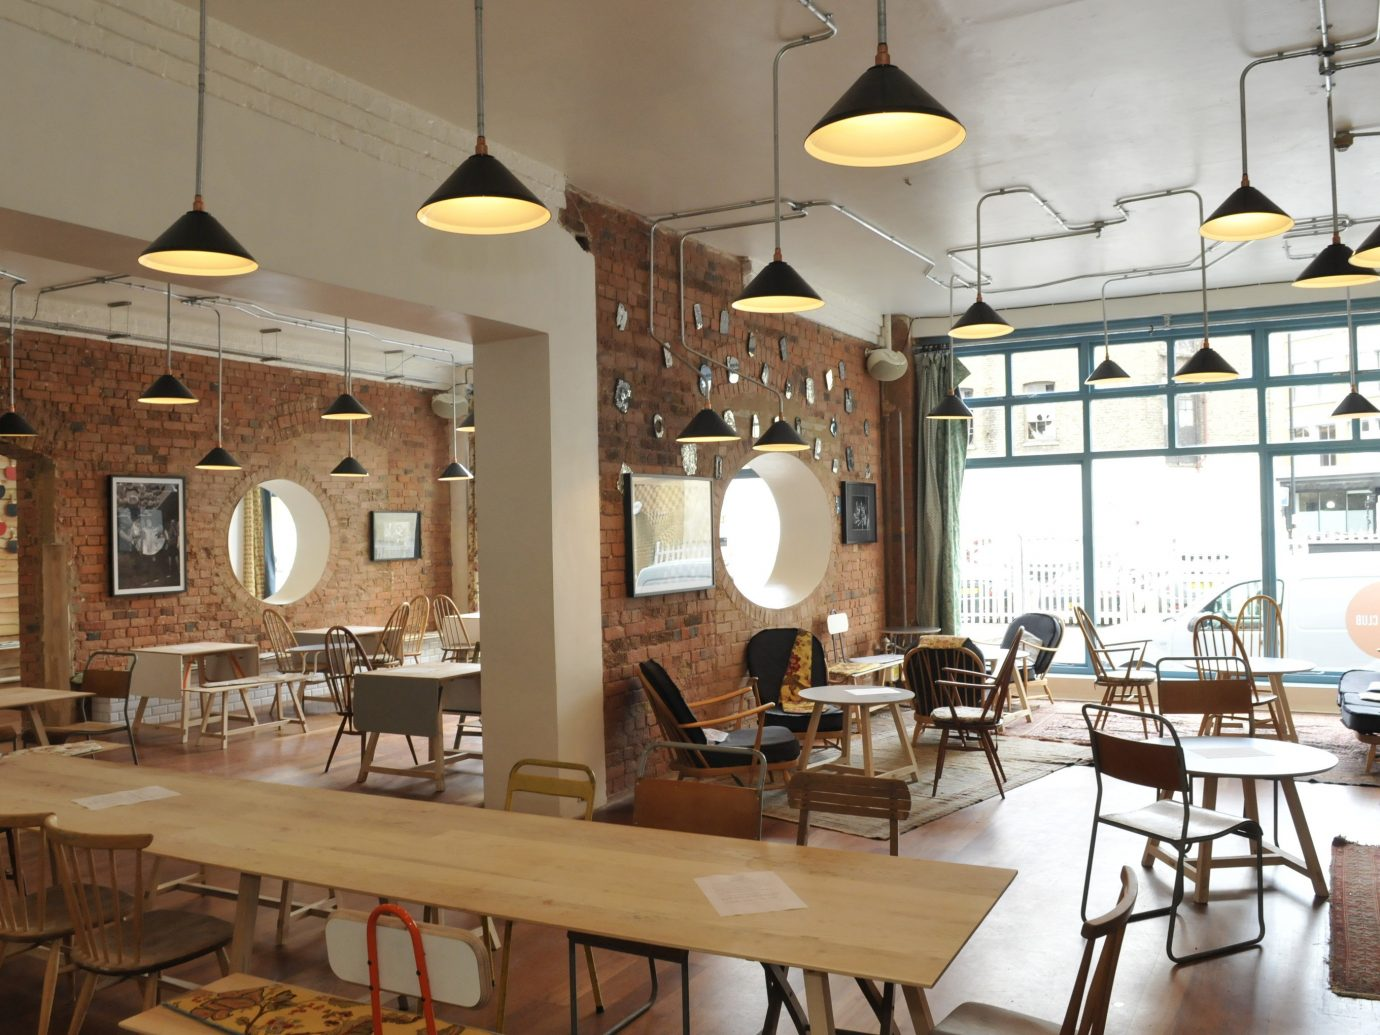 Offbeat Trip Ideas table indoor floor chair Living interior design room restaurant ceiling café furniture dining room coffeehouse area cluttered